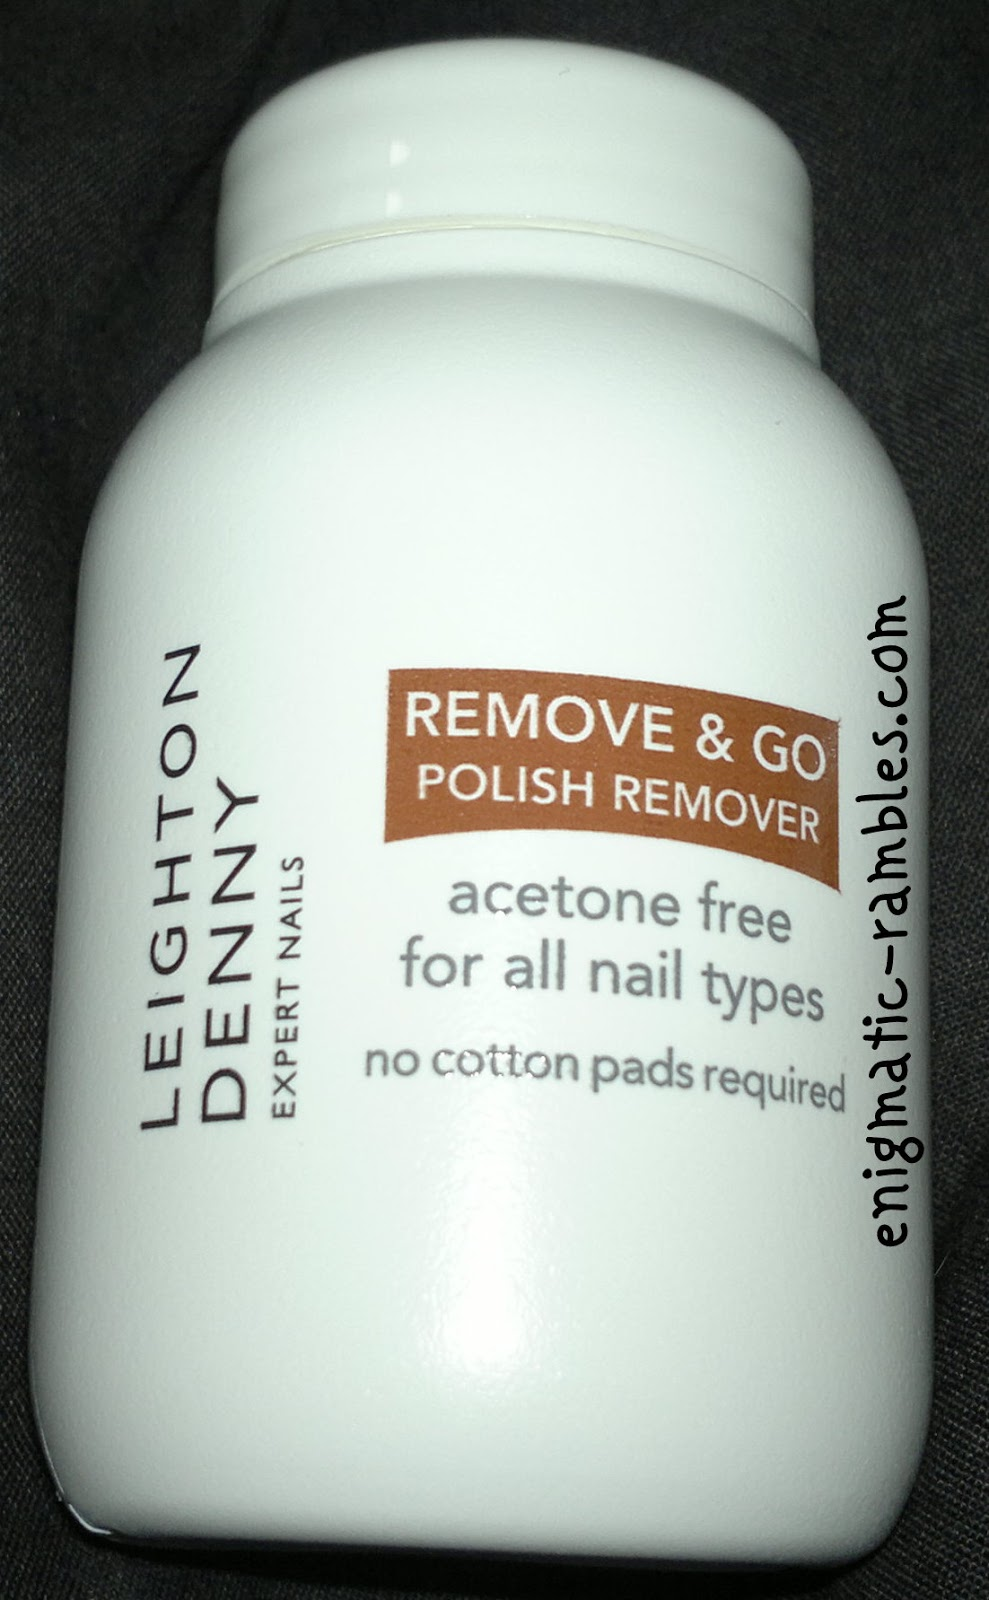 Leighton-Denny-Remove-and-Go-Polish-Remover-Acetone-Free-review